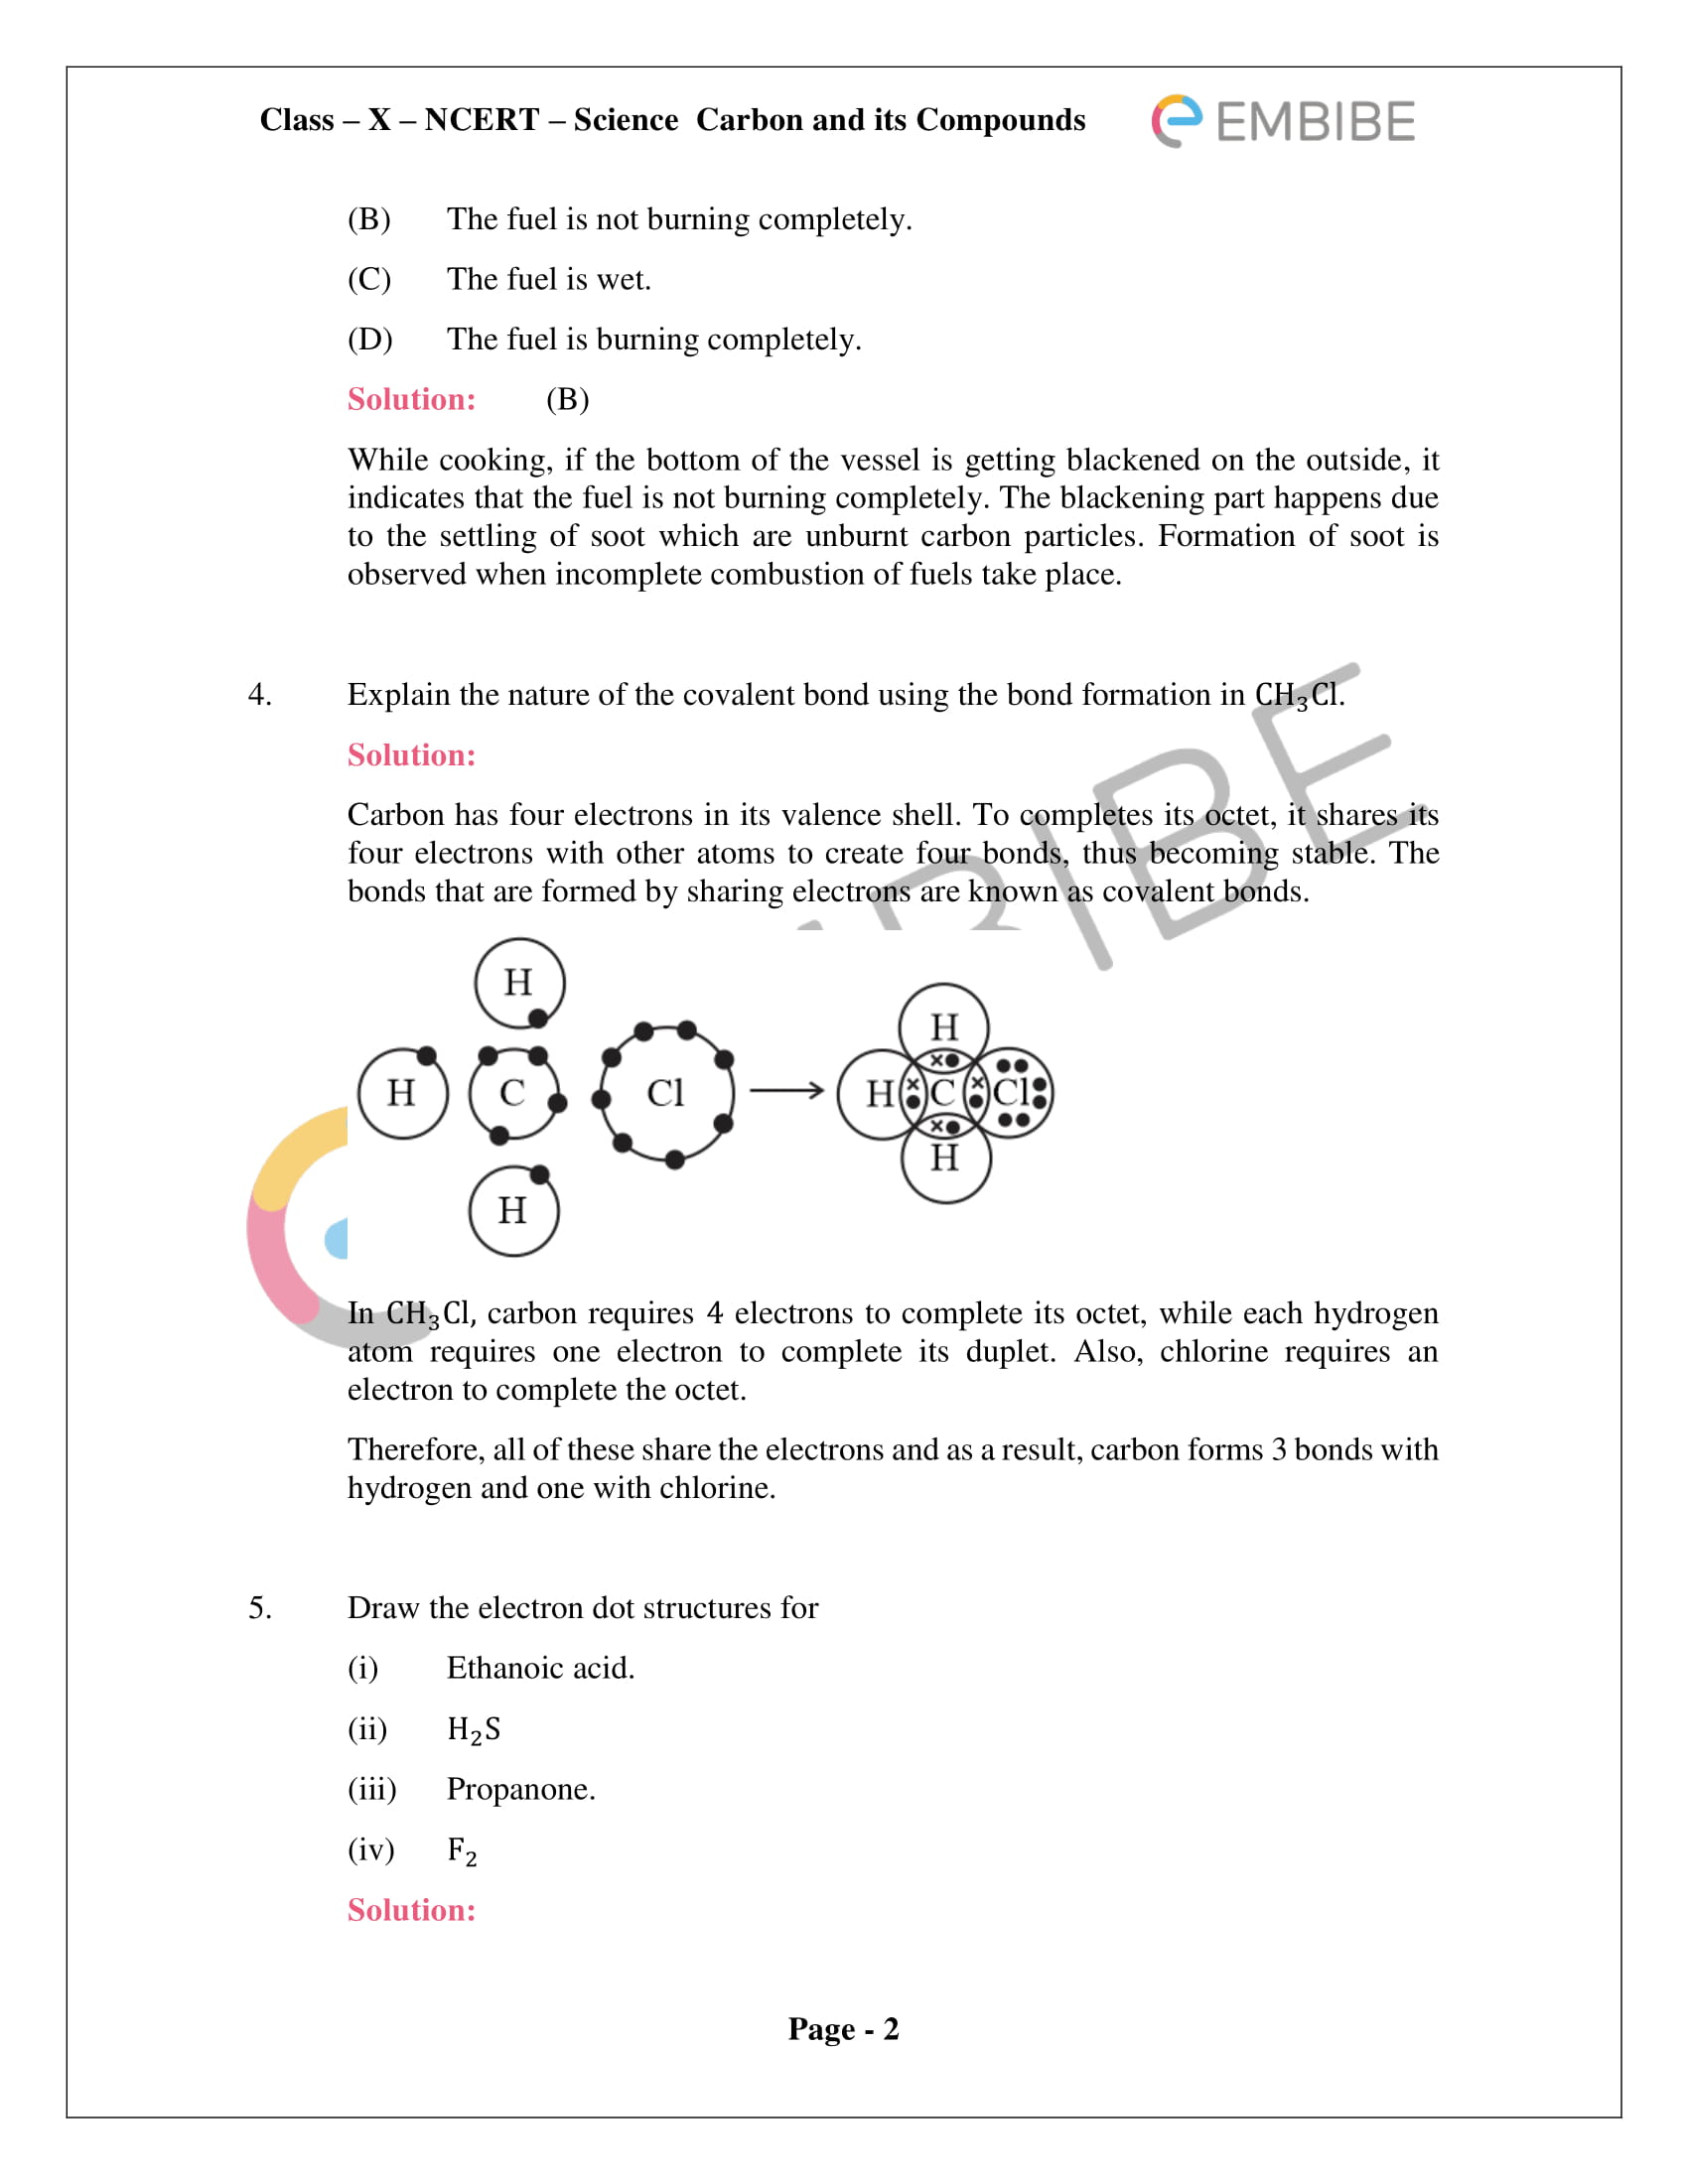 CBSE NCERT Solutions For Class 10 Science Chapter 4: Carbon And Its Compounds - PDF